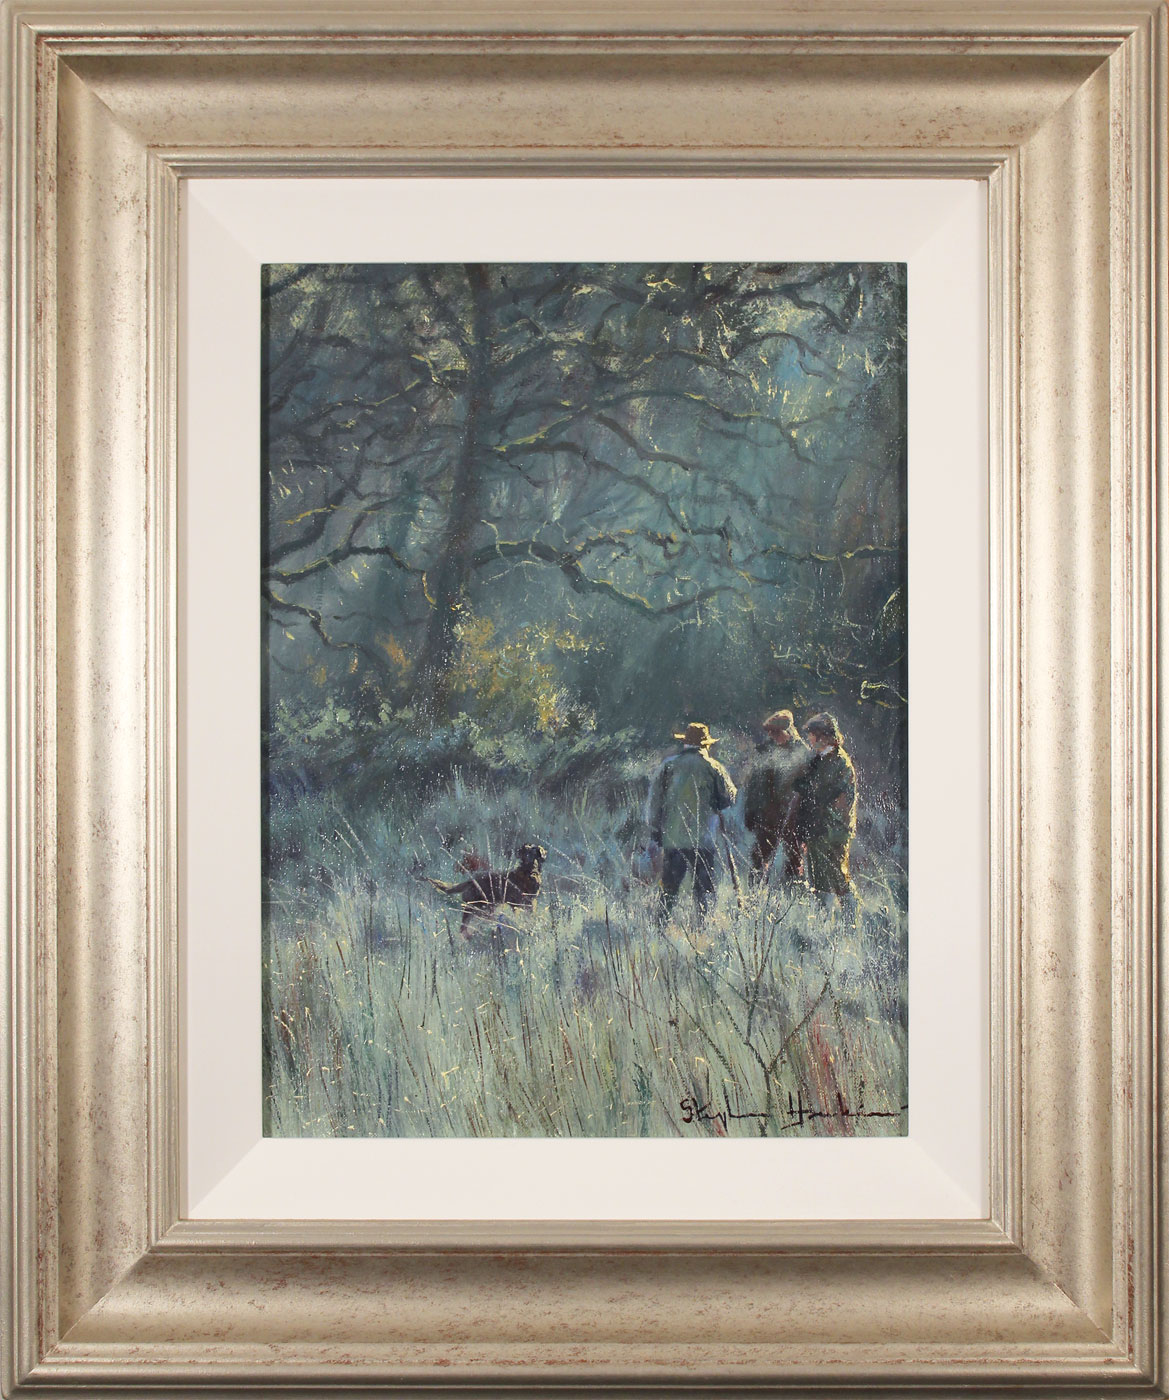 Stephen Hawkins, Original oil painting on canvas, Brisk Morning Click to enlarge